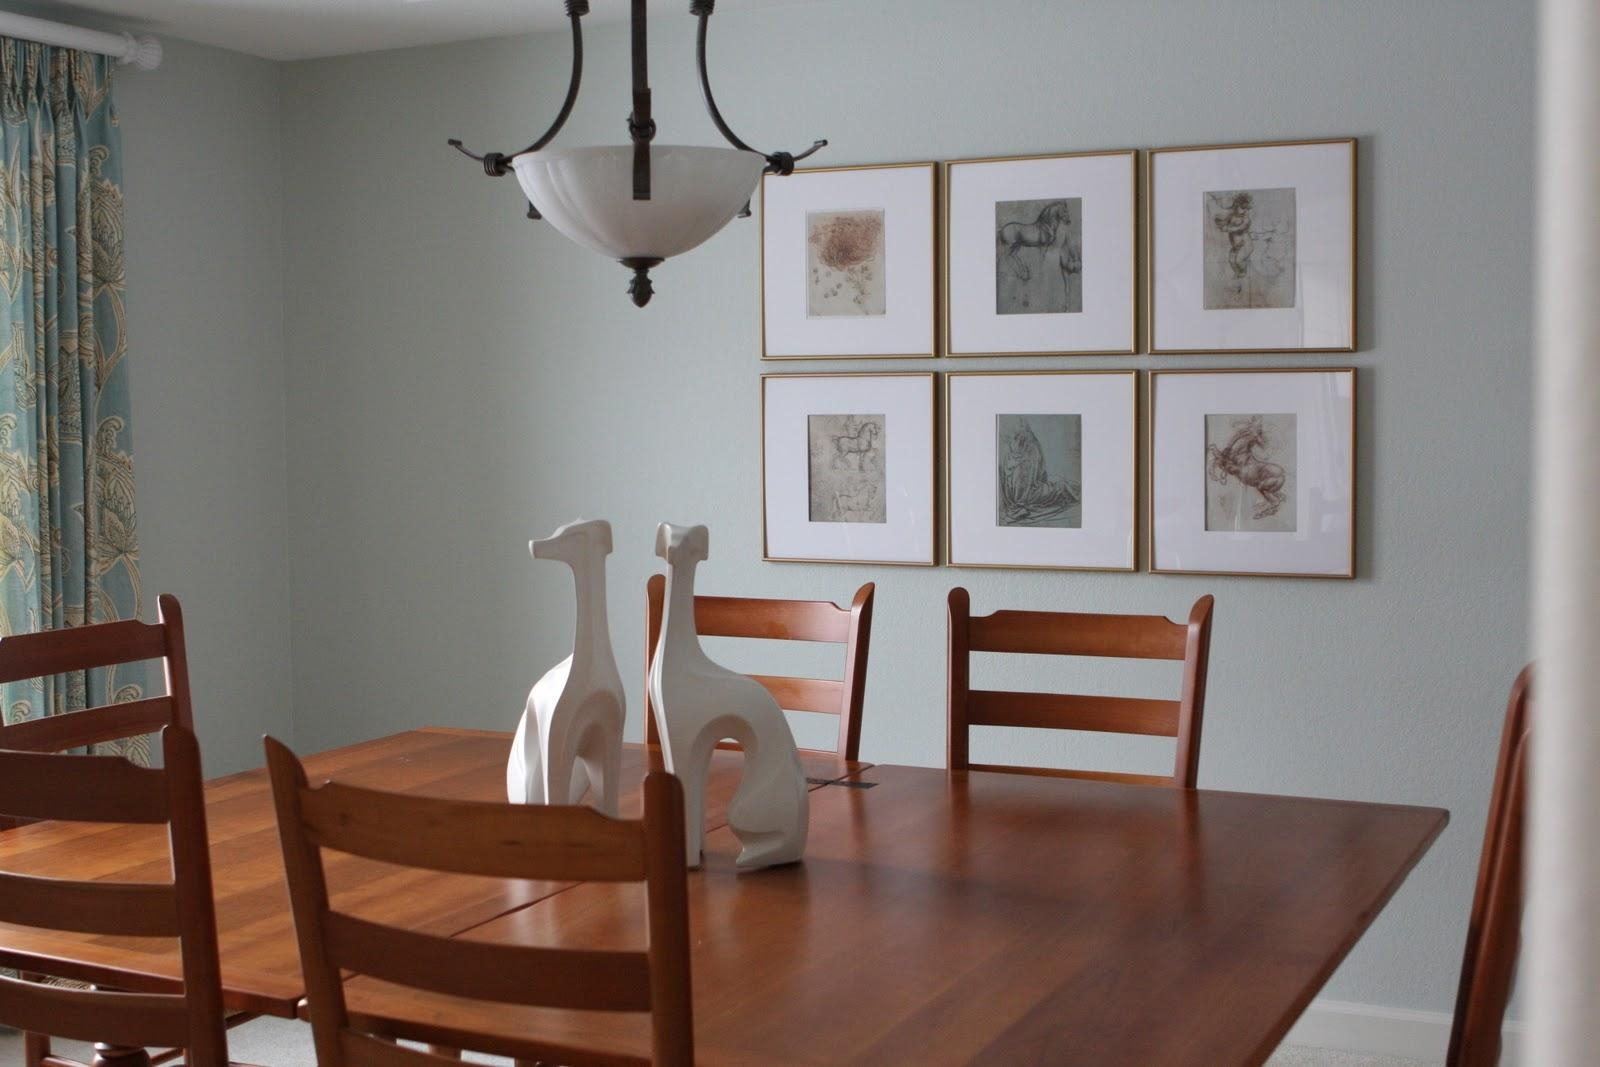 Wall Art Designs: Wall Art For Dining Room Contemporary Wall Art Inside Wall Art For Dining Room (View 6 of 20)